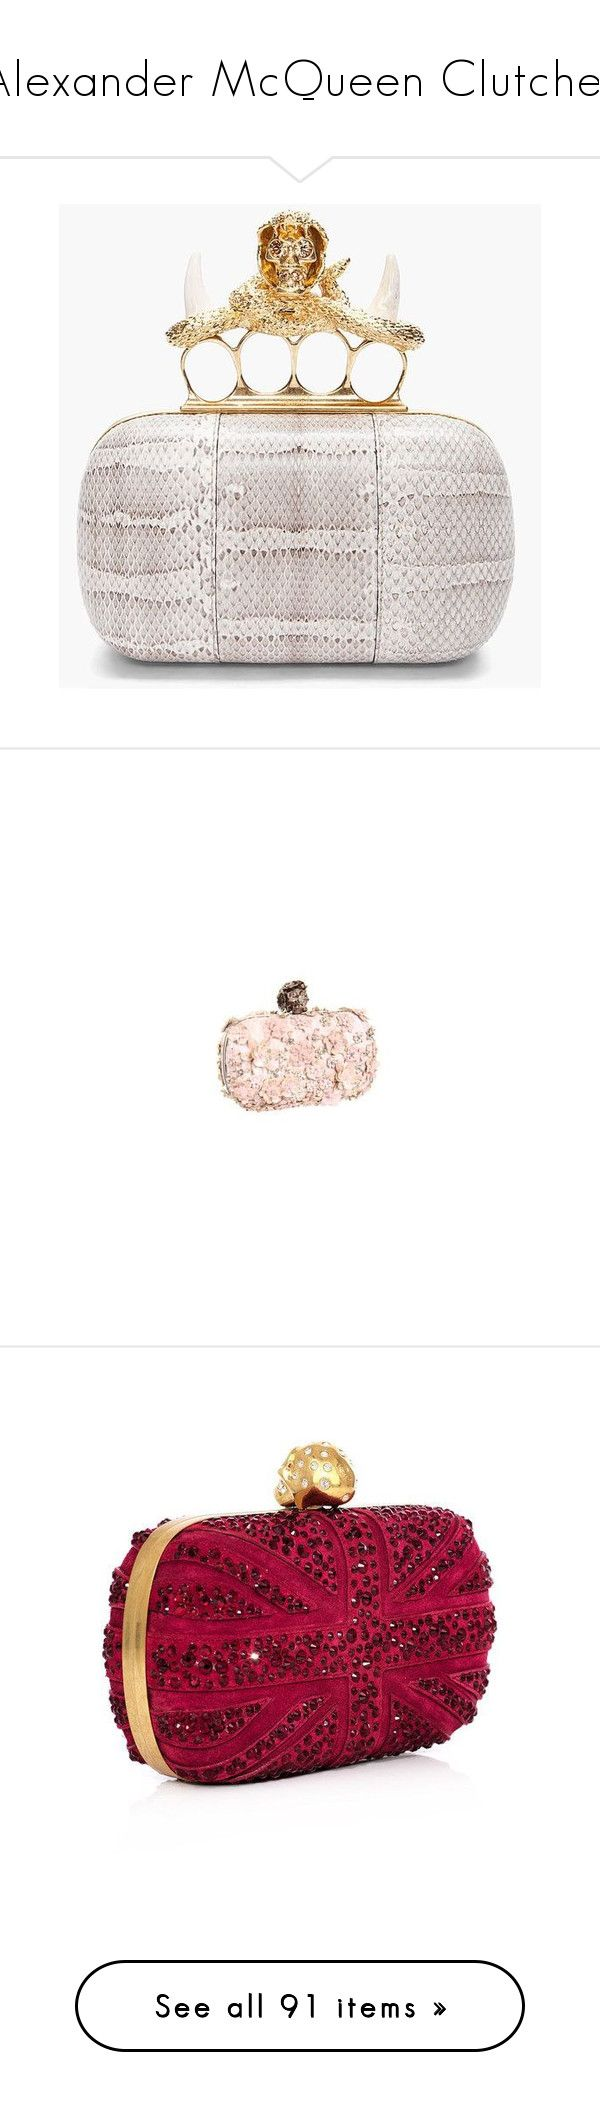 """""""Alexander McQueen Clutches"""" by danijelapoly ❤ liked on Polyvore featuring bags, handbags, clutches, knuckle purse, embellished purses, hard clutch, alexander mcqueen handbags, knuckle box clutch, multicolor and zipper purse"""